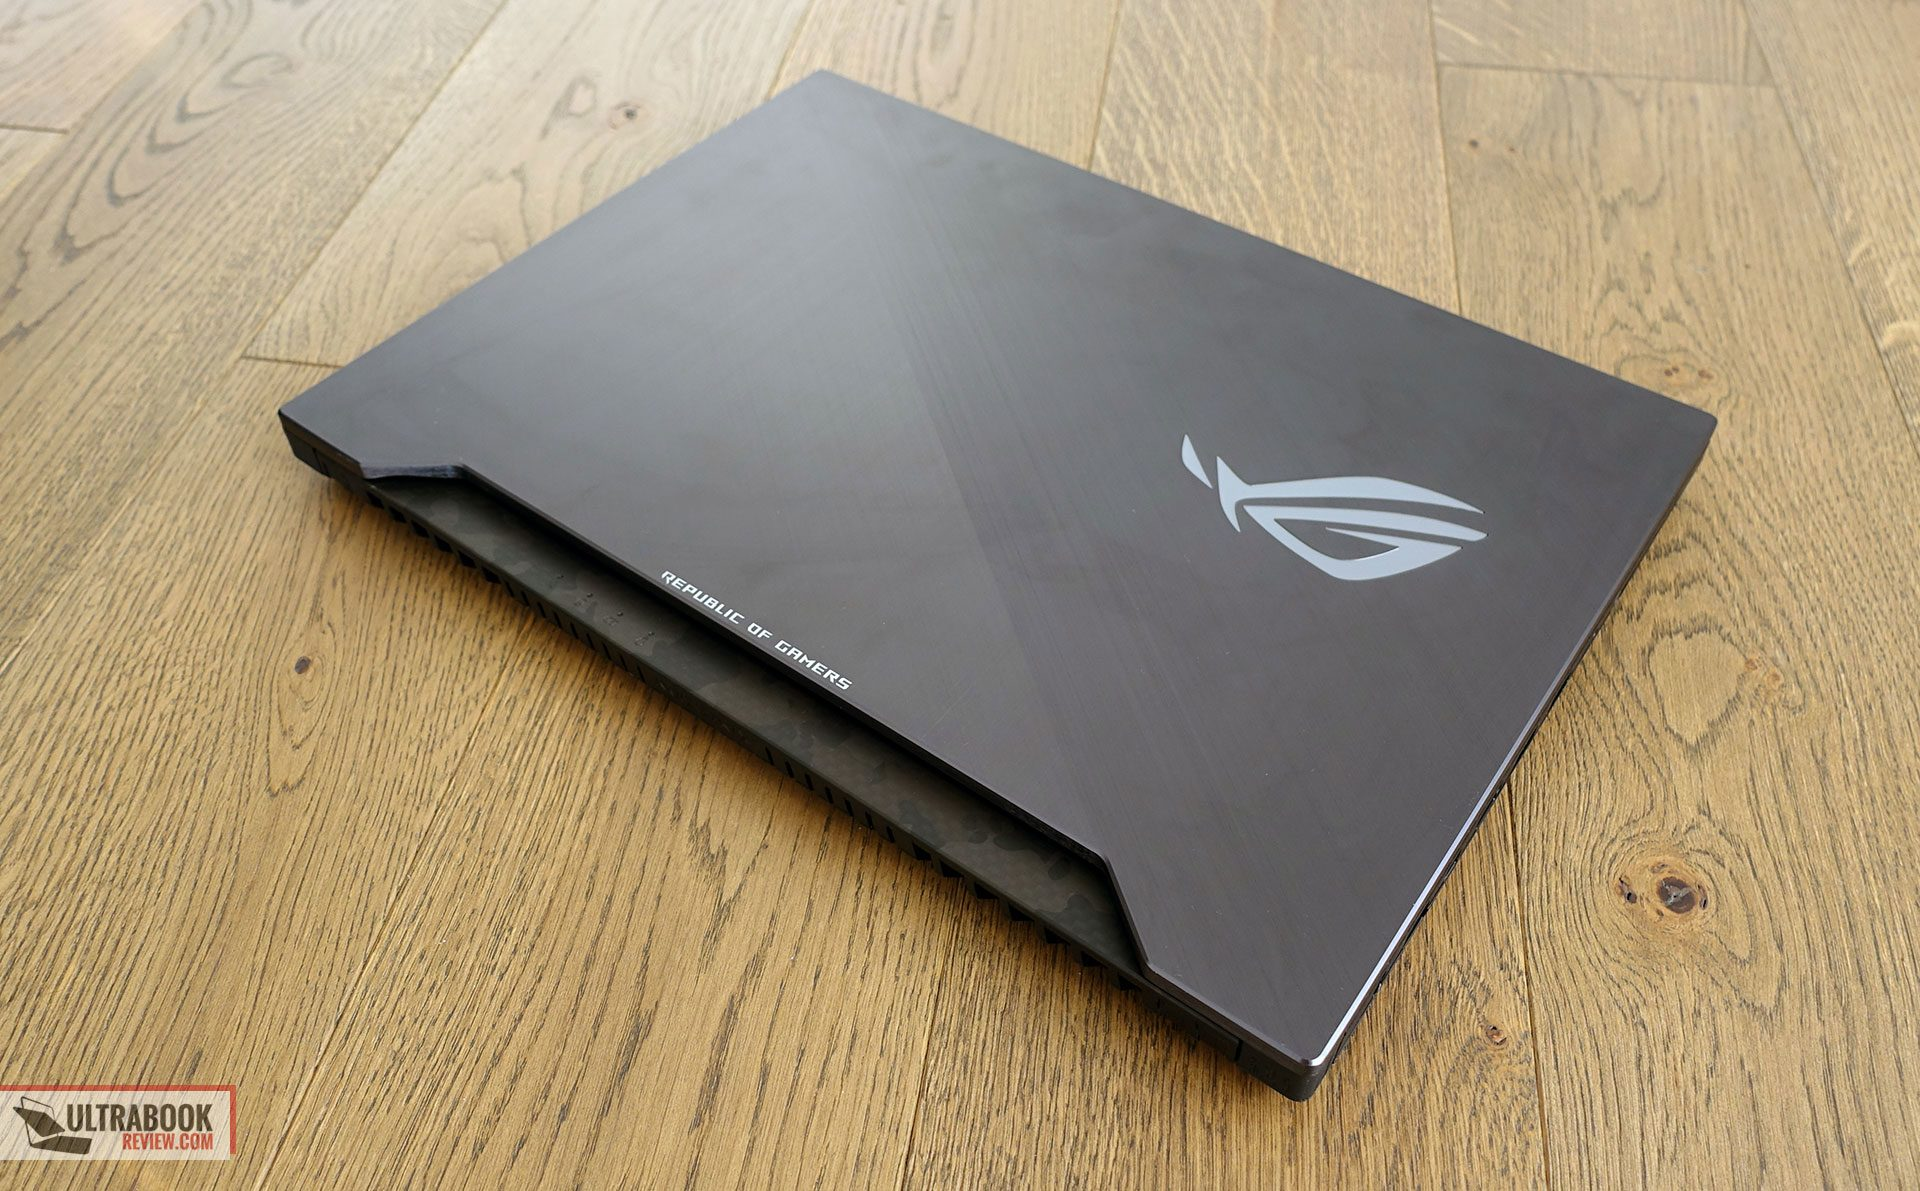 Asus ROG Strix GL504 SCAR II review (GL504GM - i7-8750H, GTX